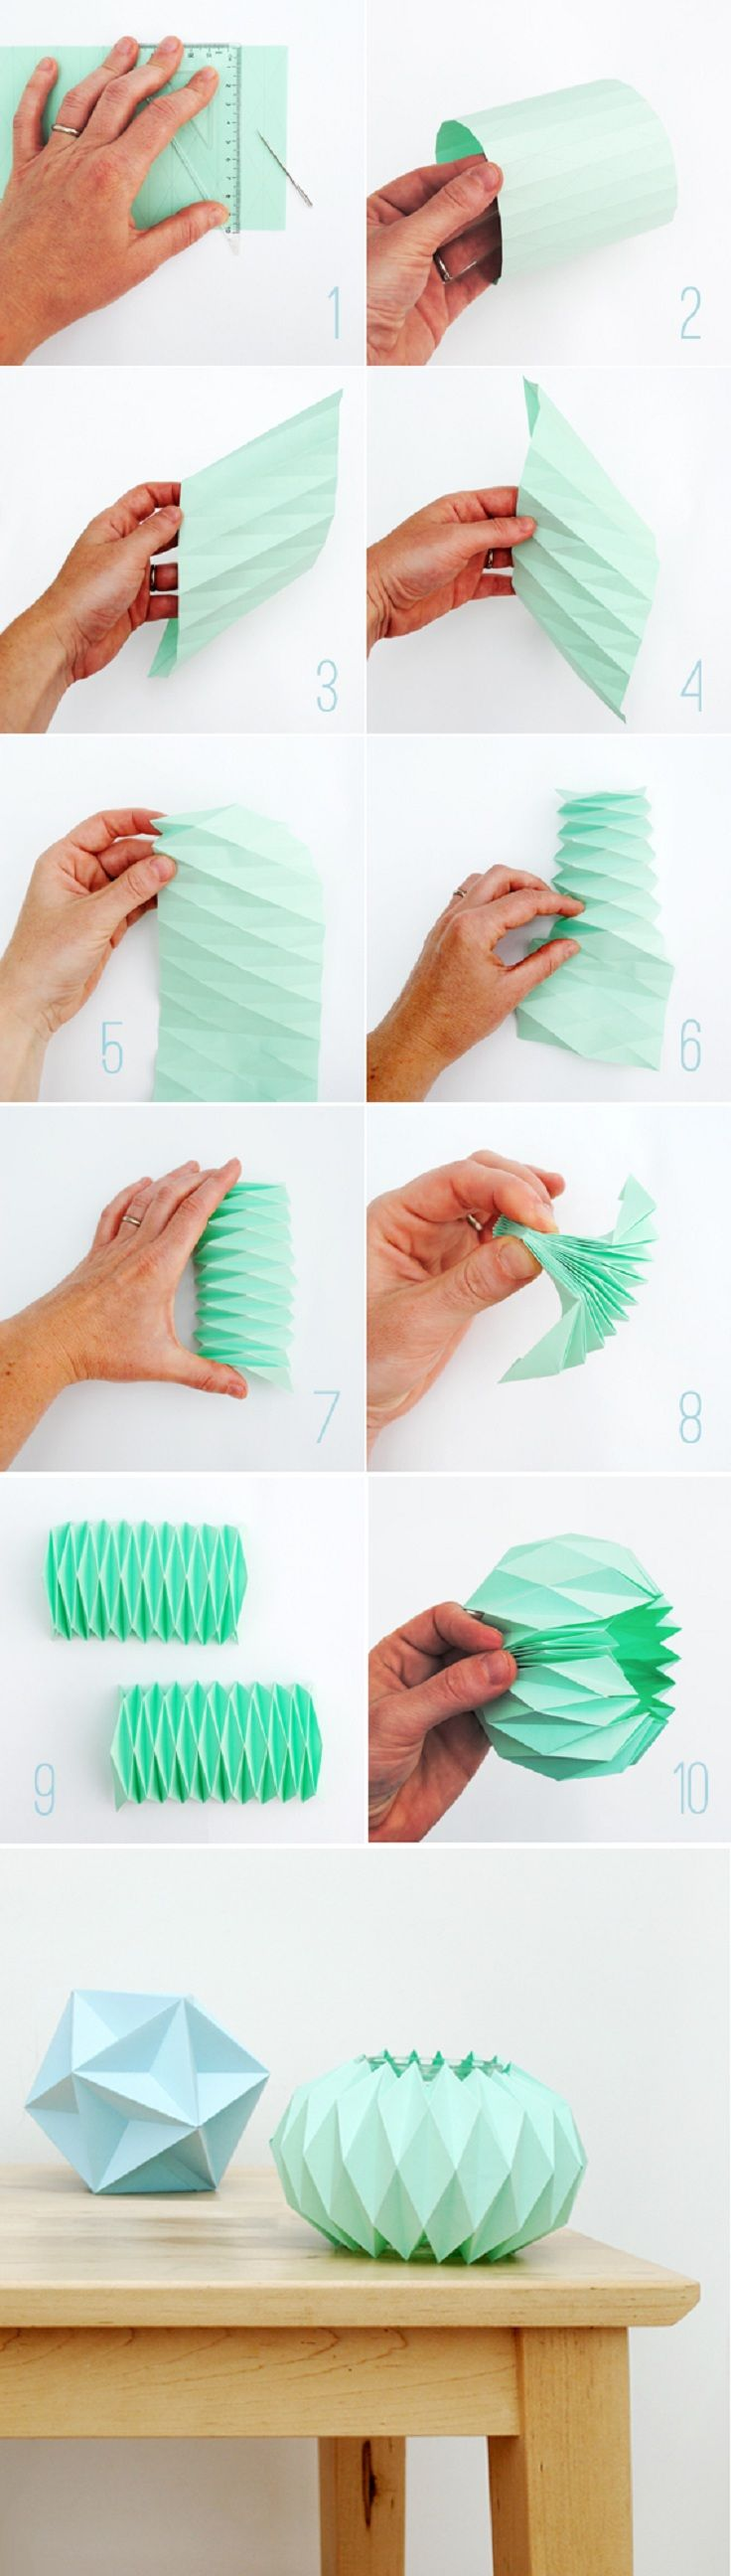 paper fold, use the technique to make a new lampshade to the string lamp. Is it possible to make it in starched fabric?